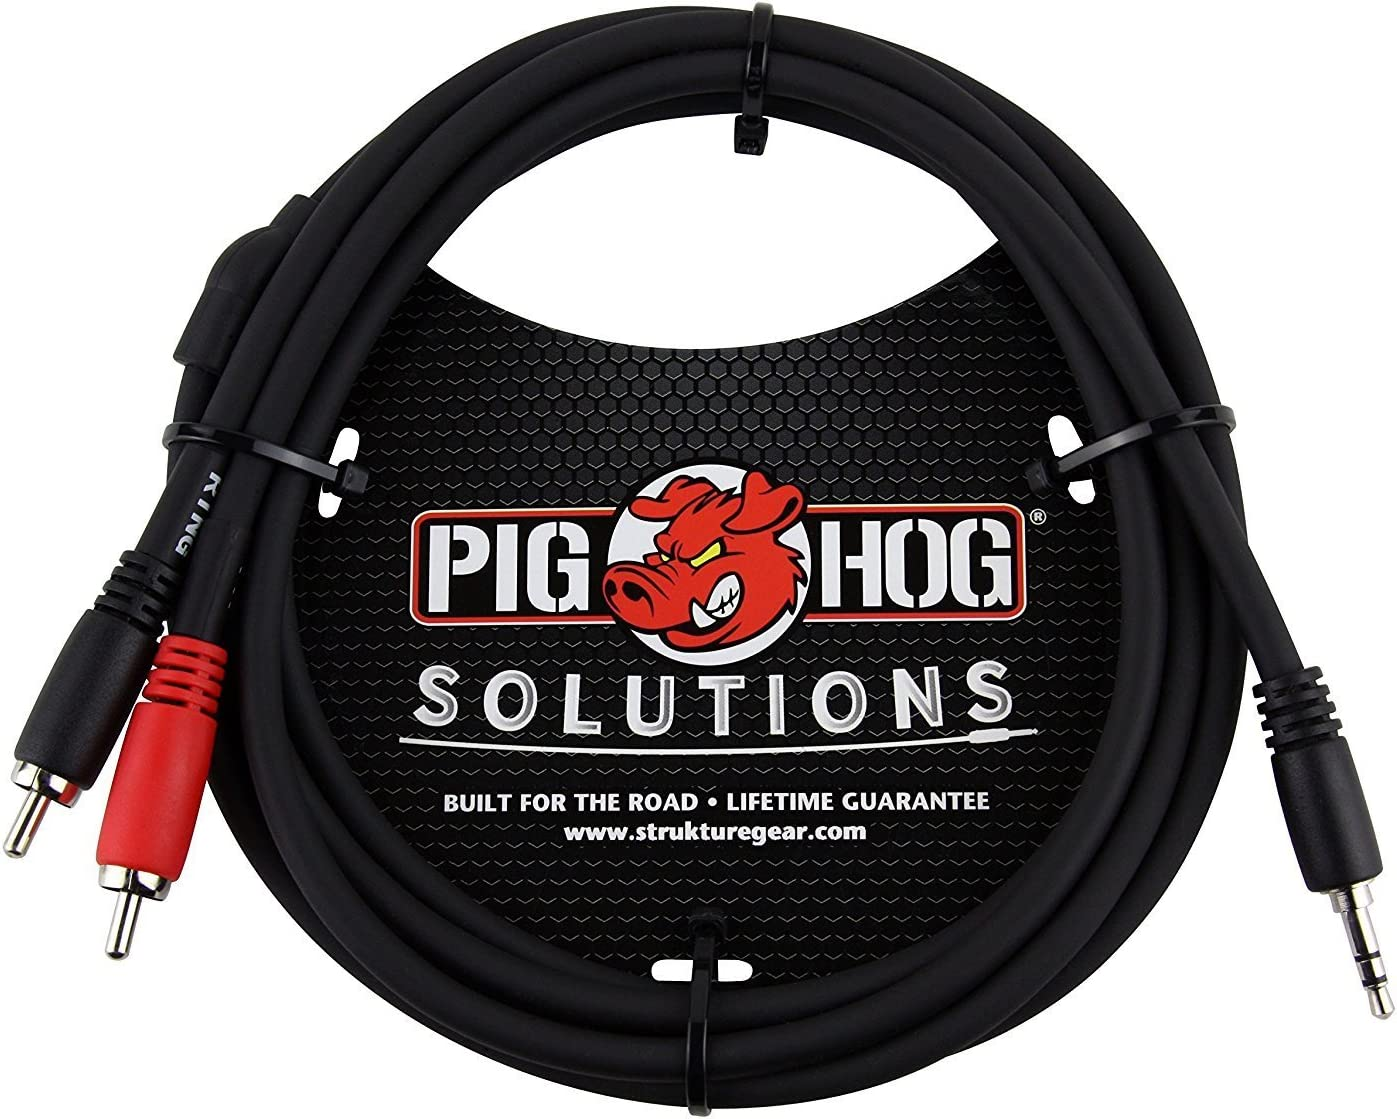 10 Feet Stereo Breakout Cable Pig Hog PB-S3R10 3.5 mm to Dual RCA Male